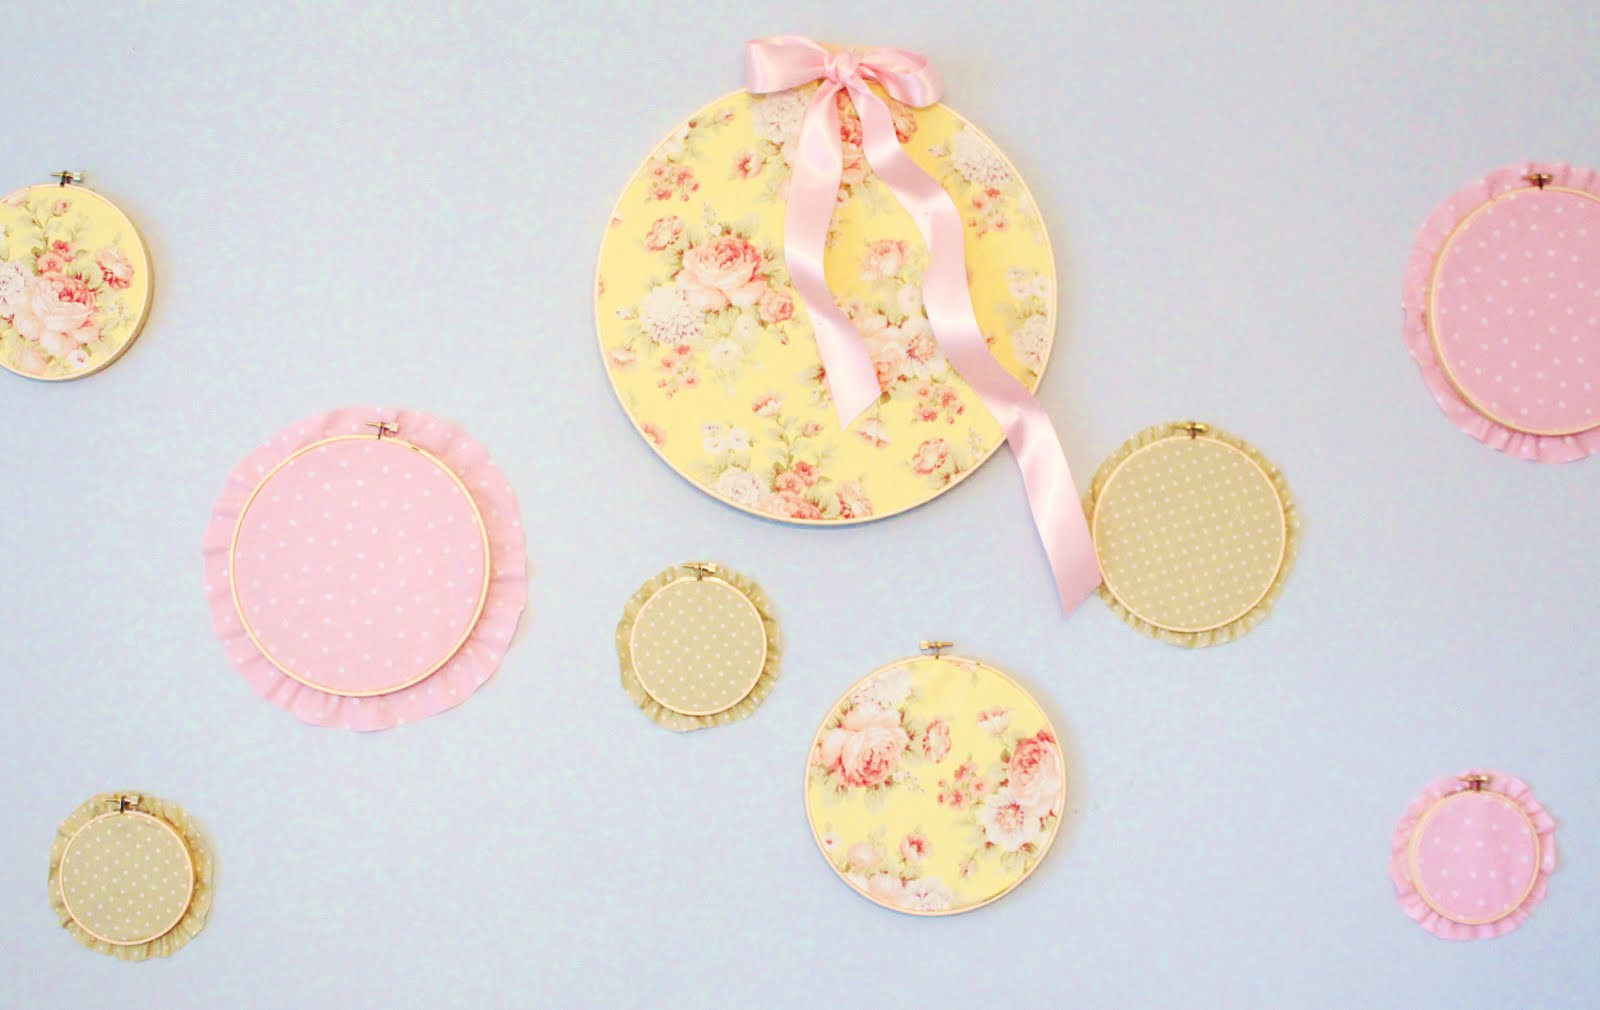 """Icing Designs: """"Sprinkled with Love"""" Donut Baby Shower   1600 x 1010 jpeg 97kB"""